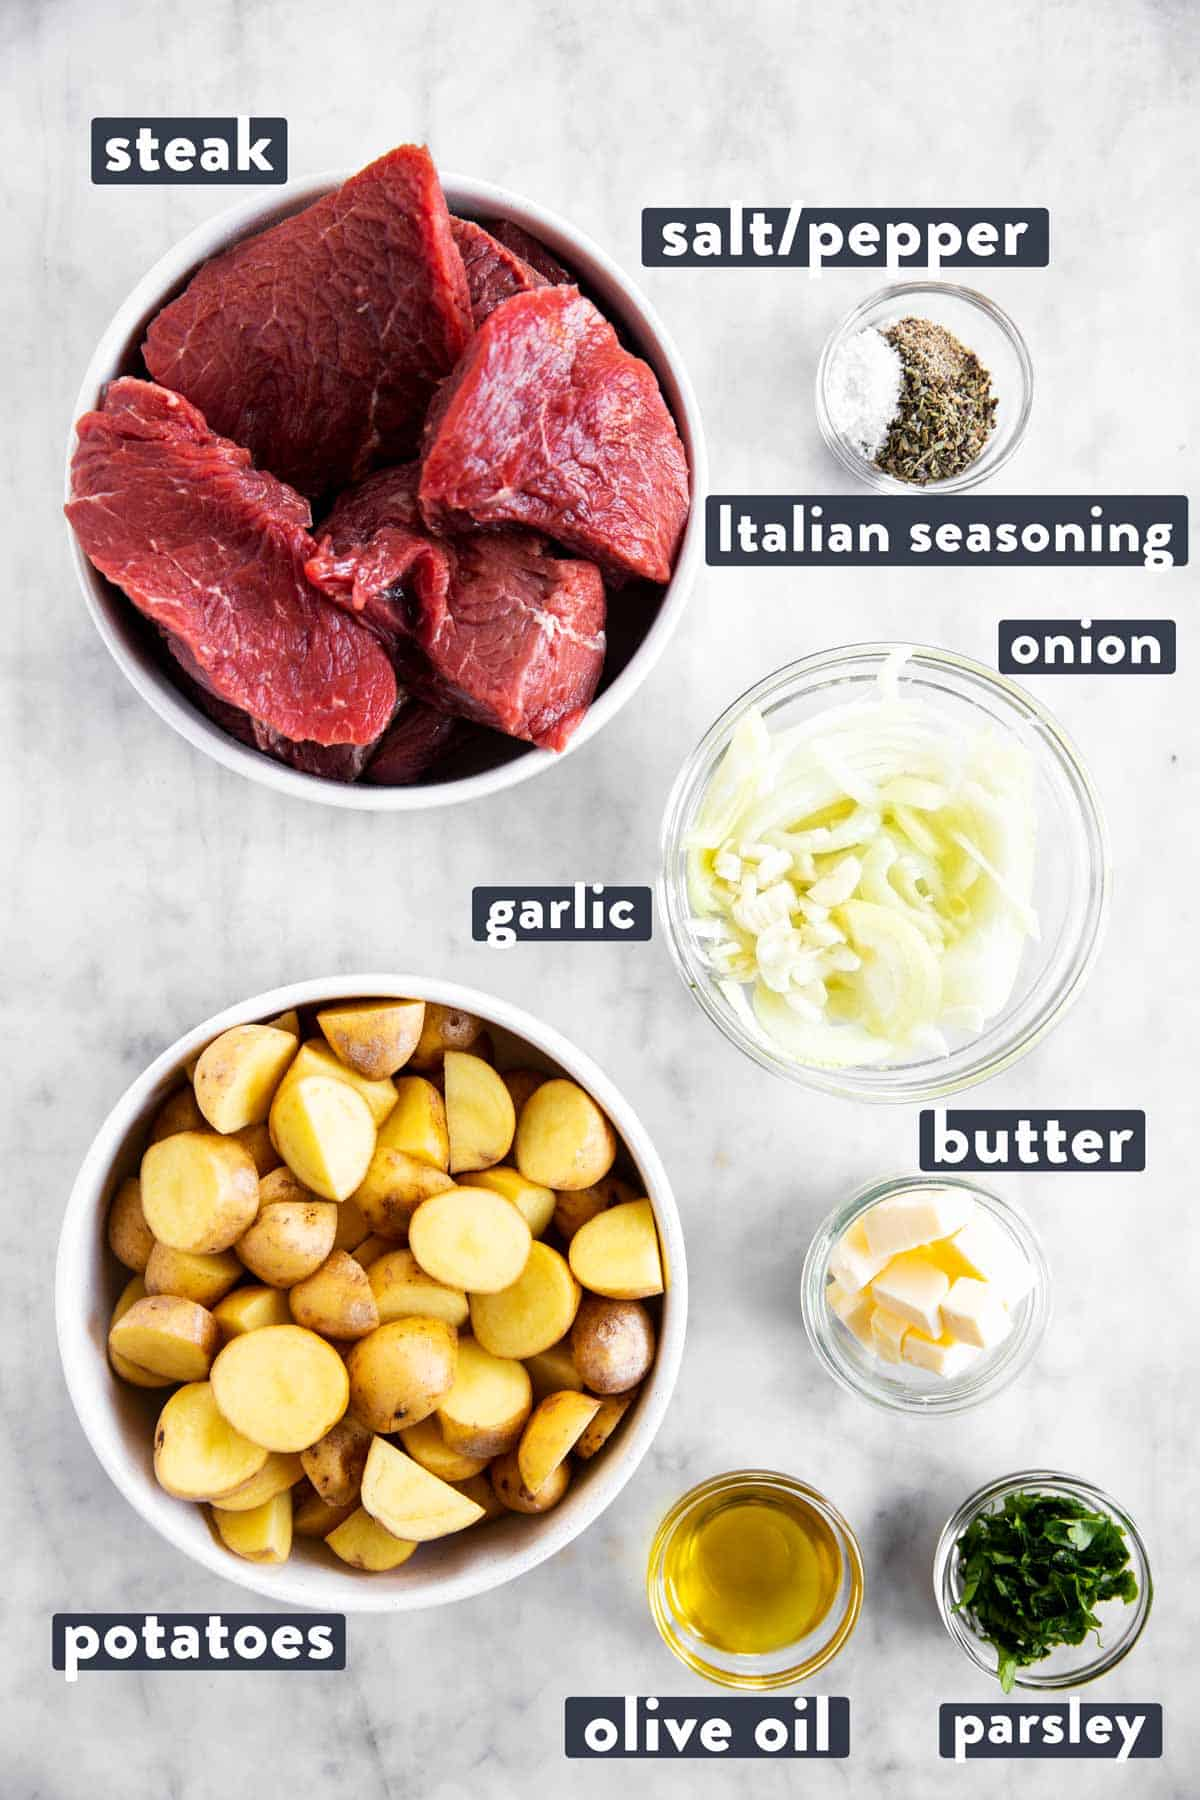 ingredients for steak and potato foil packets with text labels